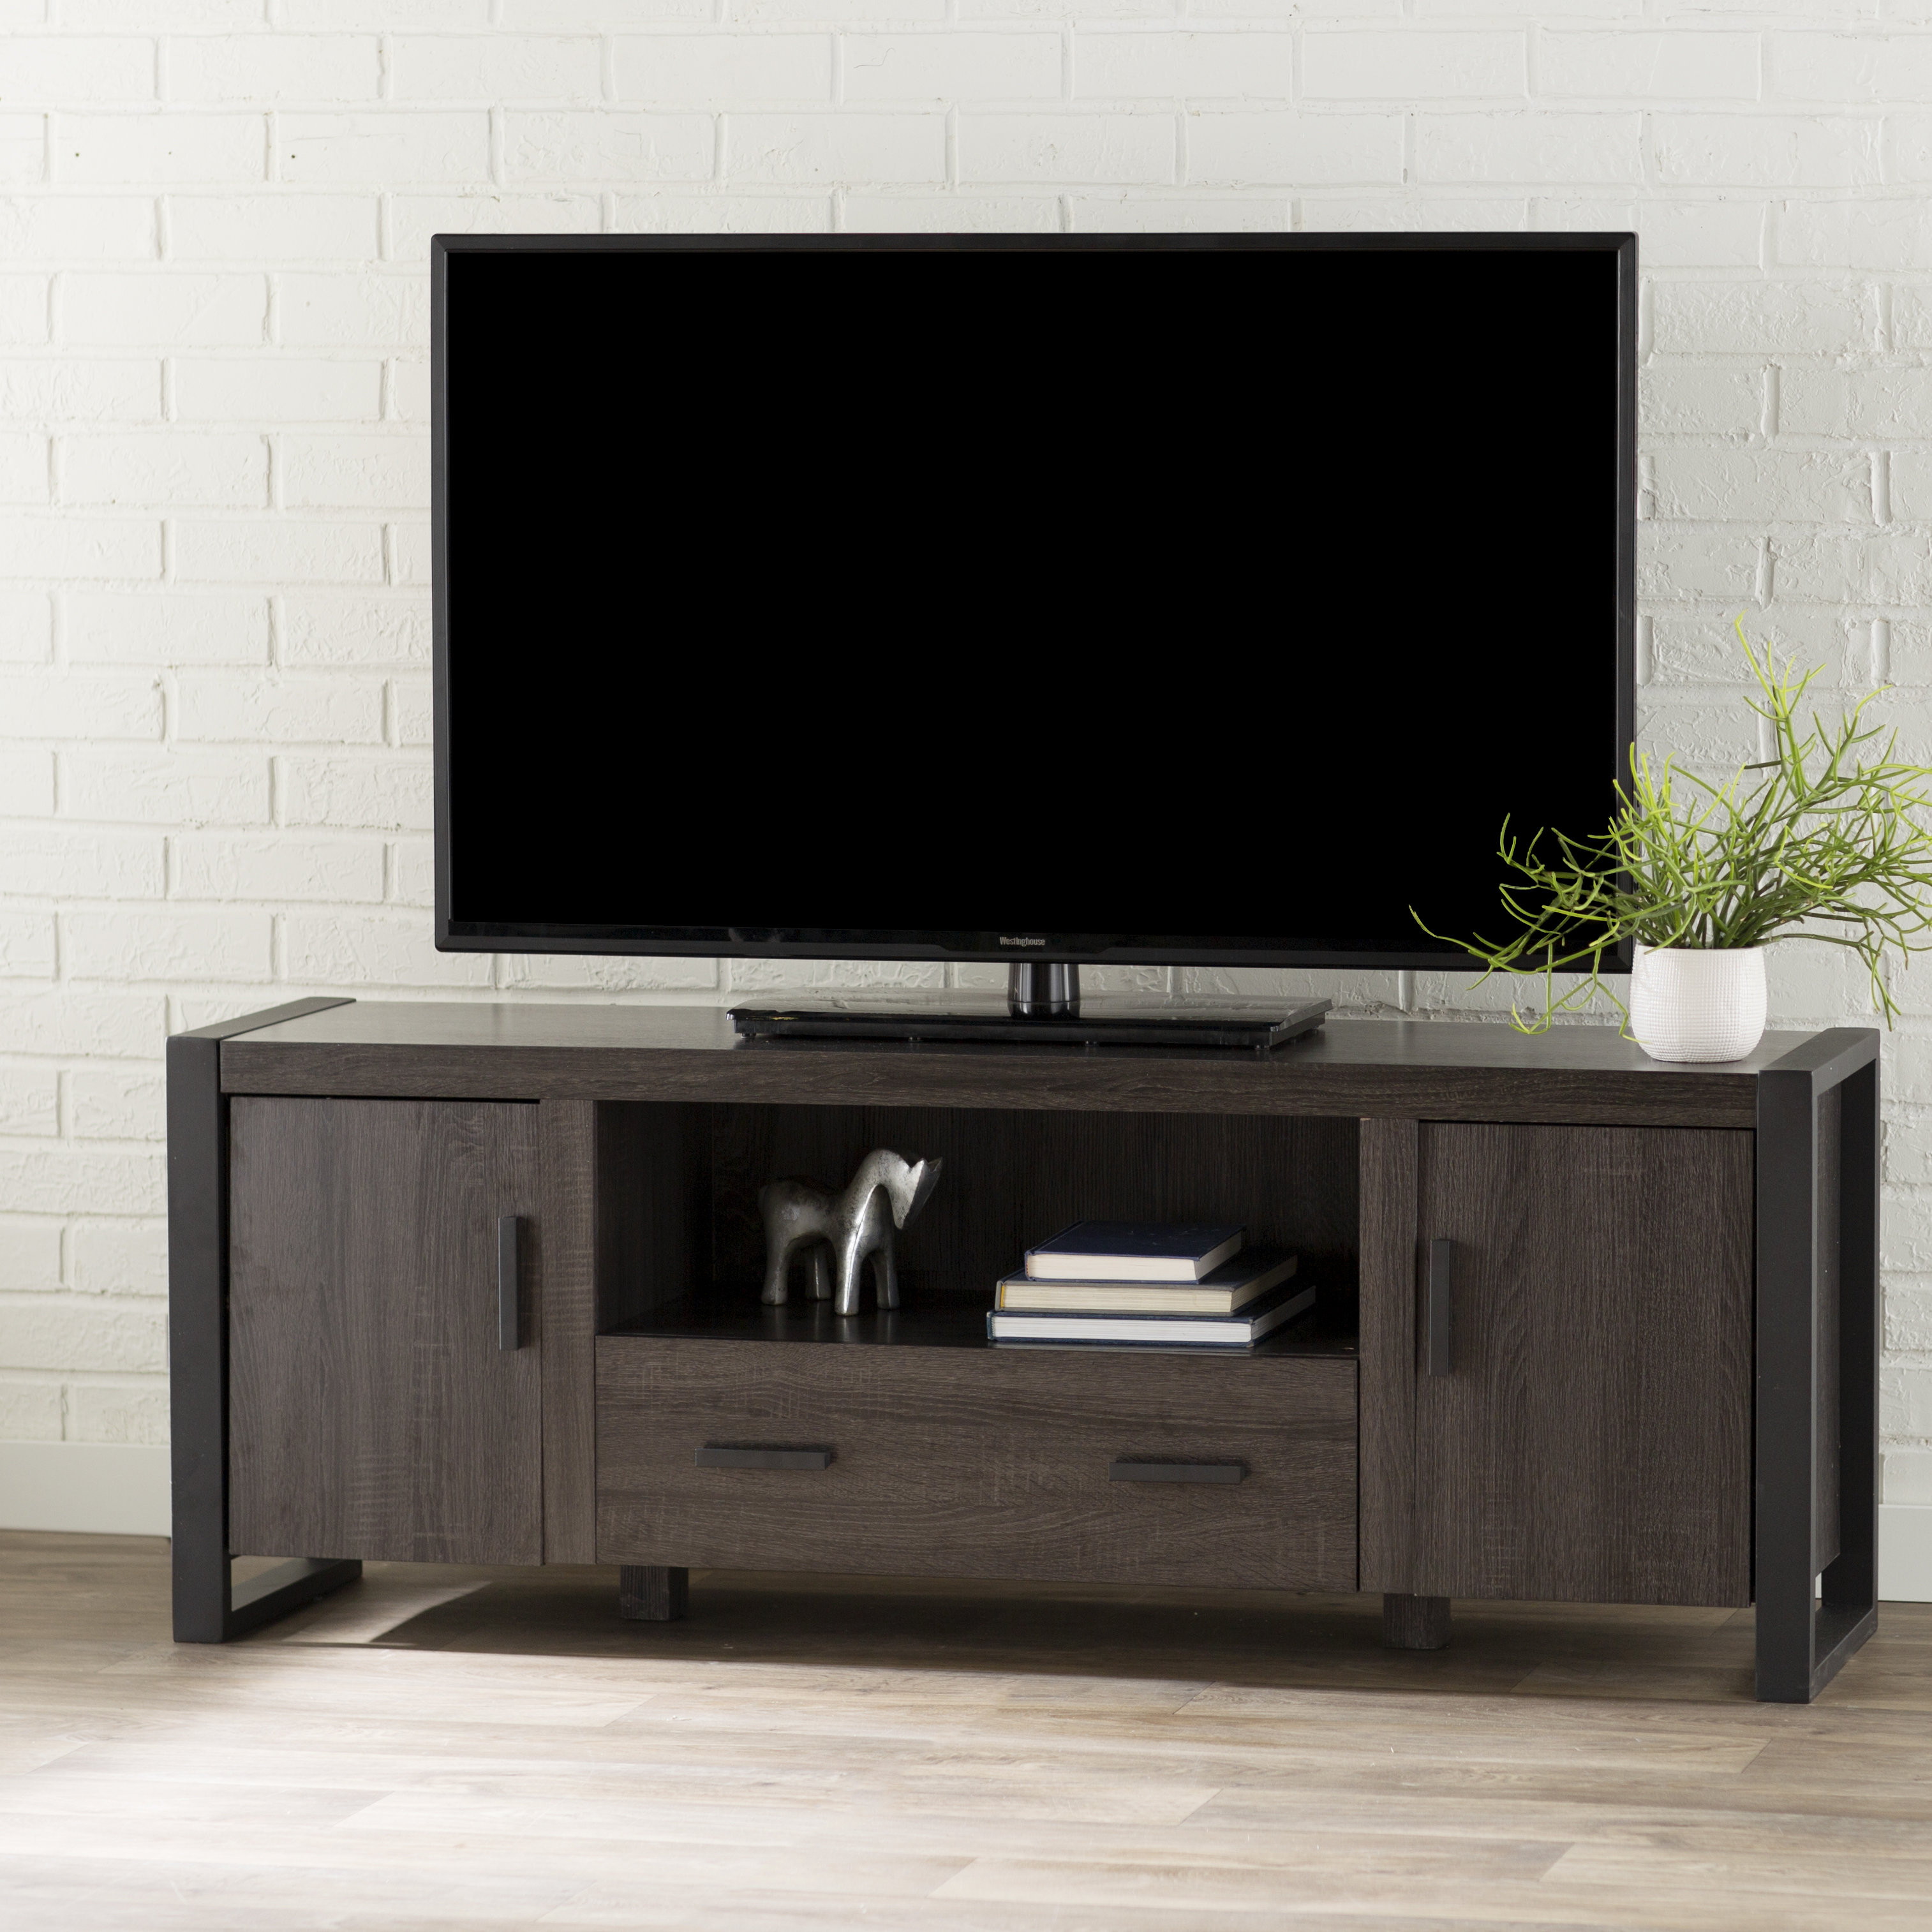 Modern 60 69 Inch Tv Stands | Allmodern In Forma 65 Inch Tv Stands (View 6 of 30)